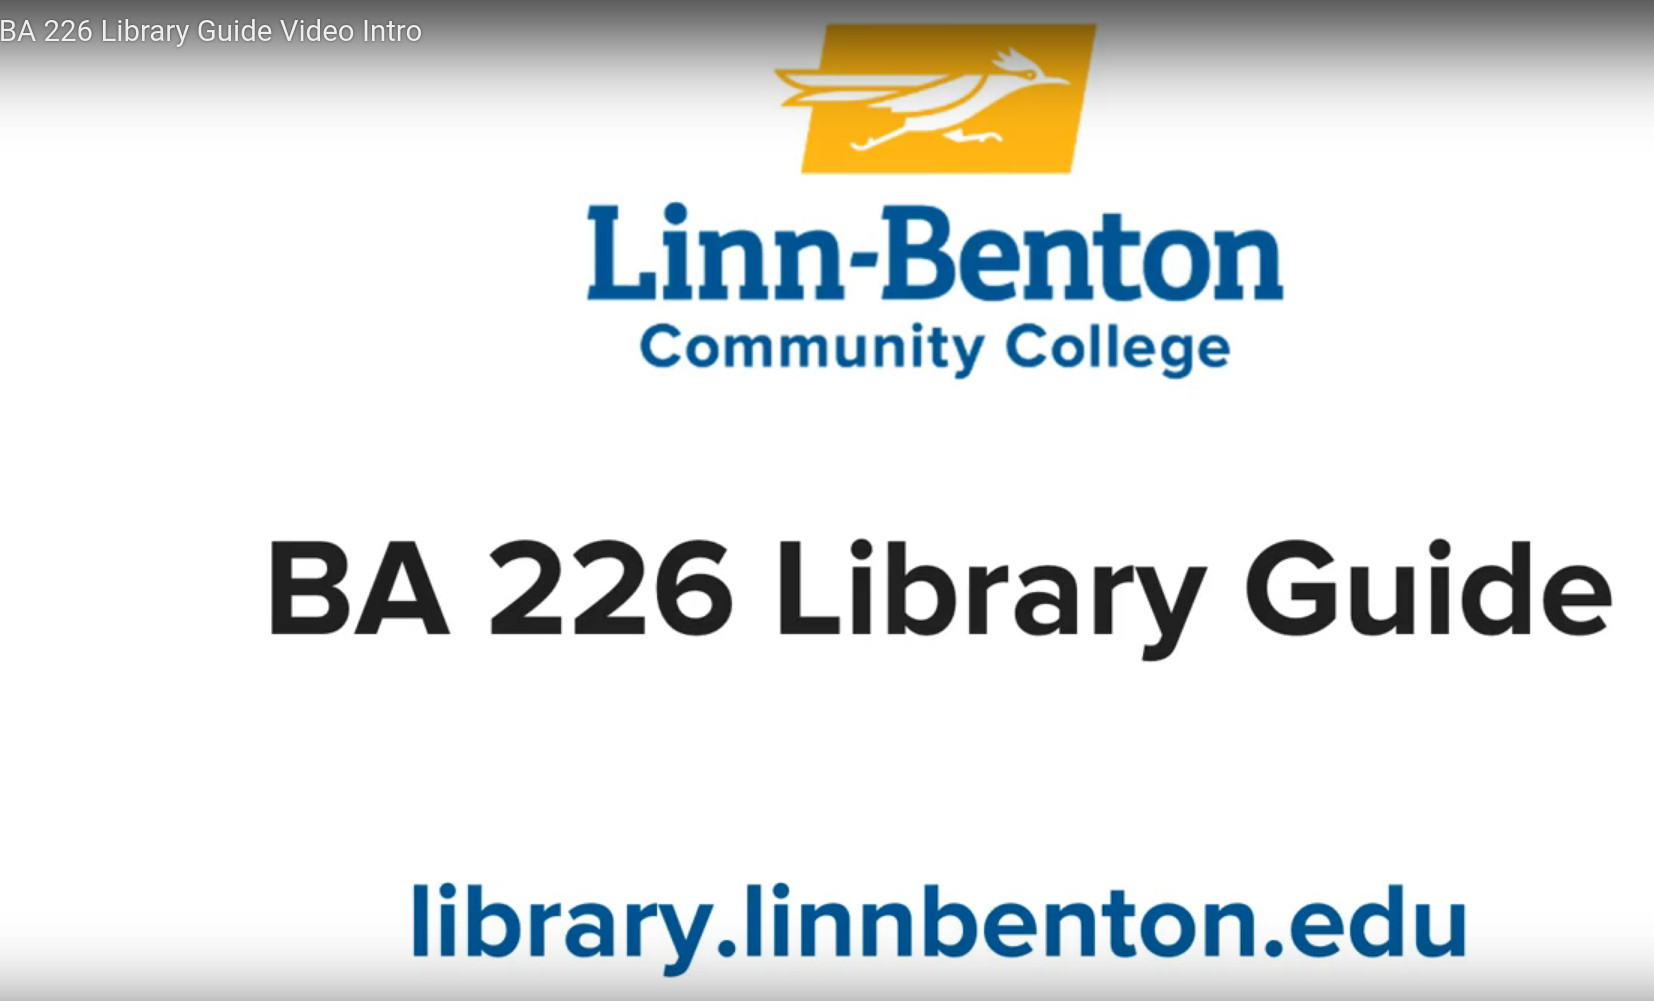 Sharing Links to LBCC Library Ebooks, Videos, and Articles